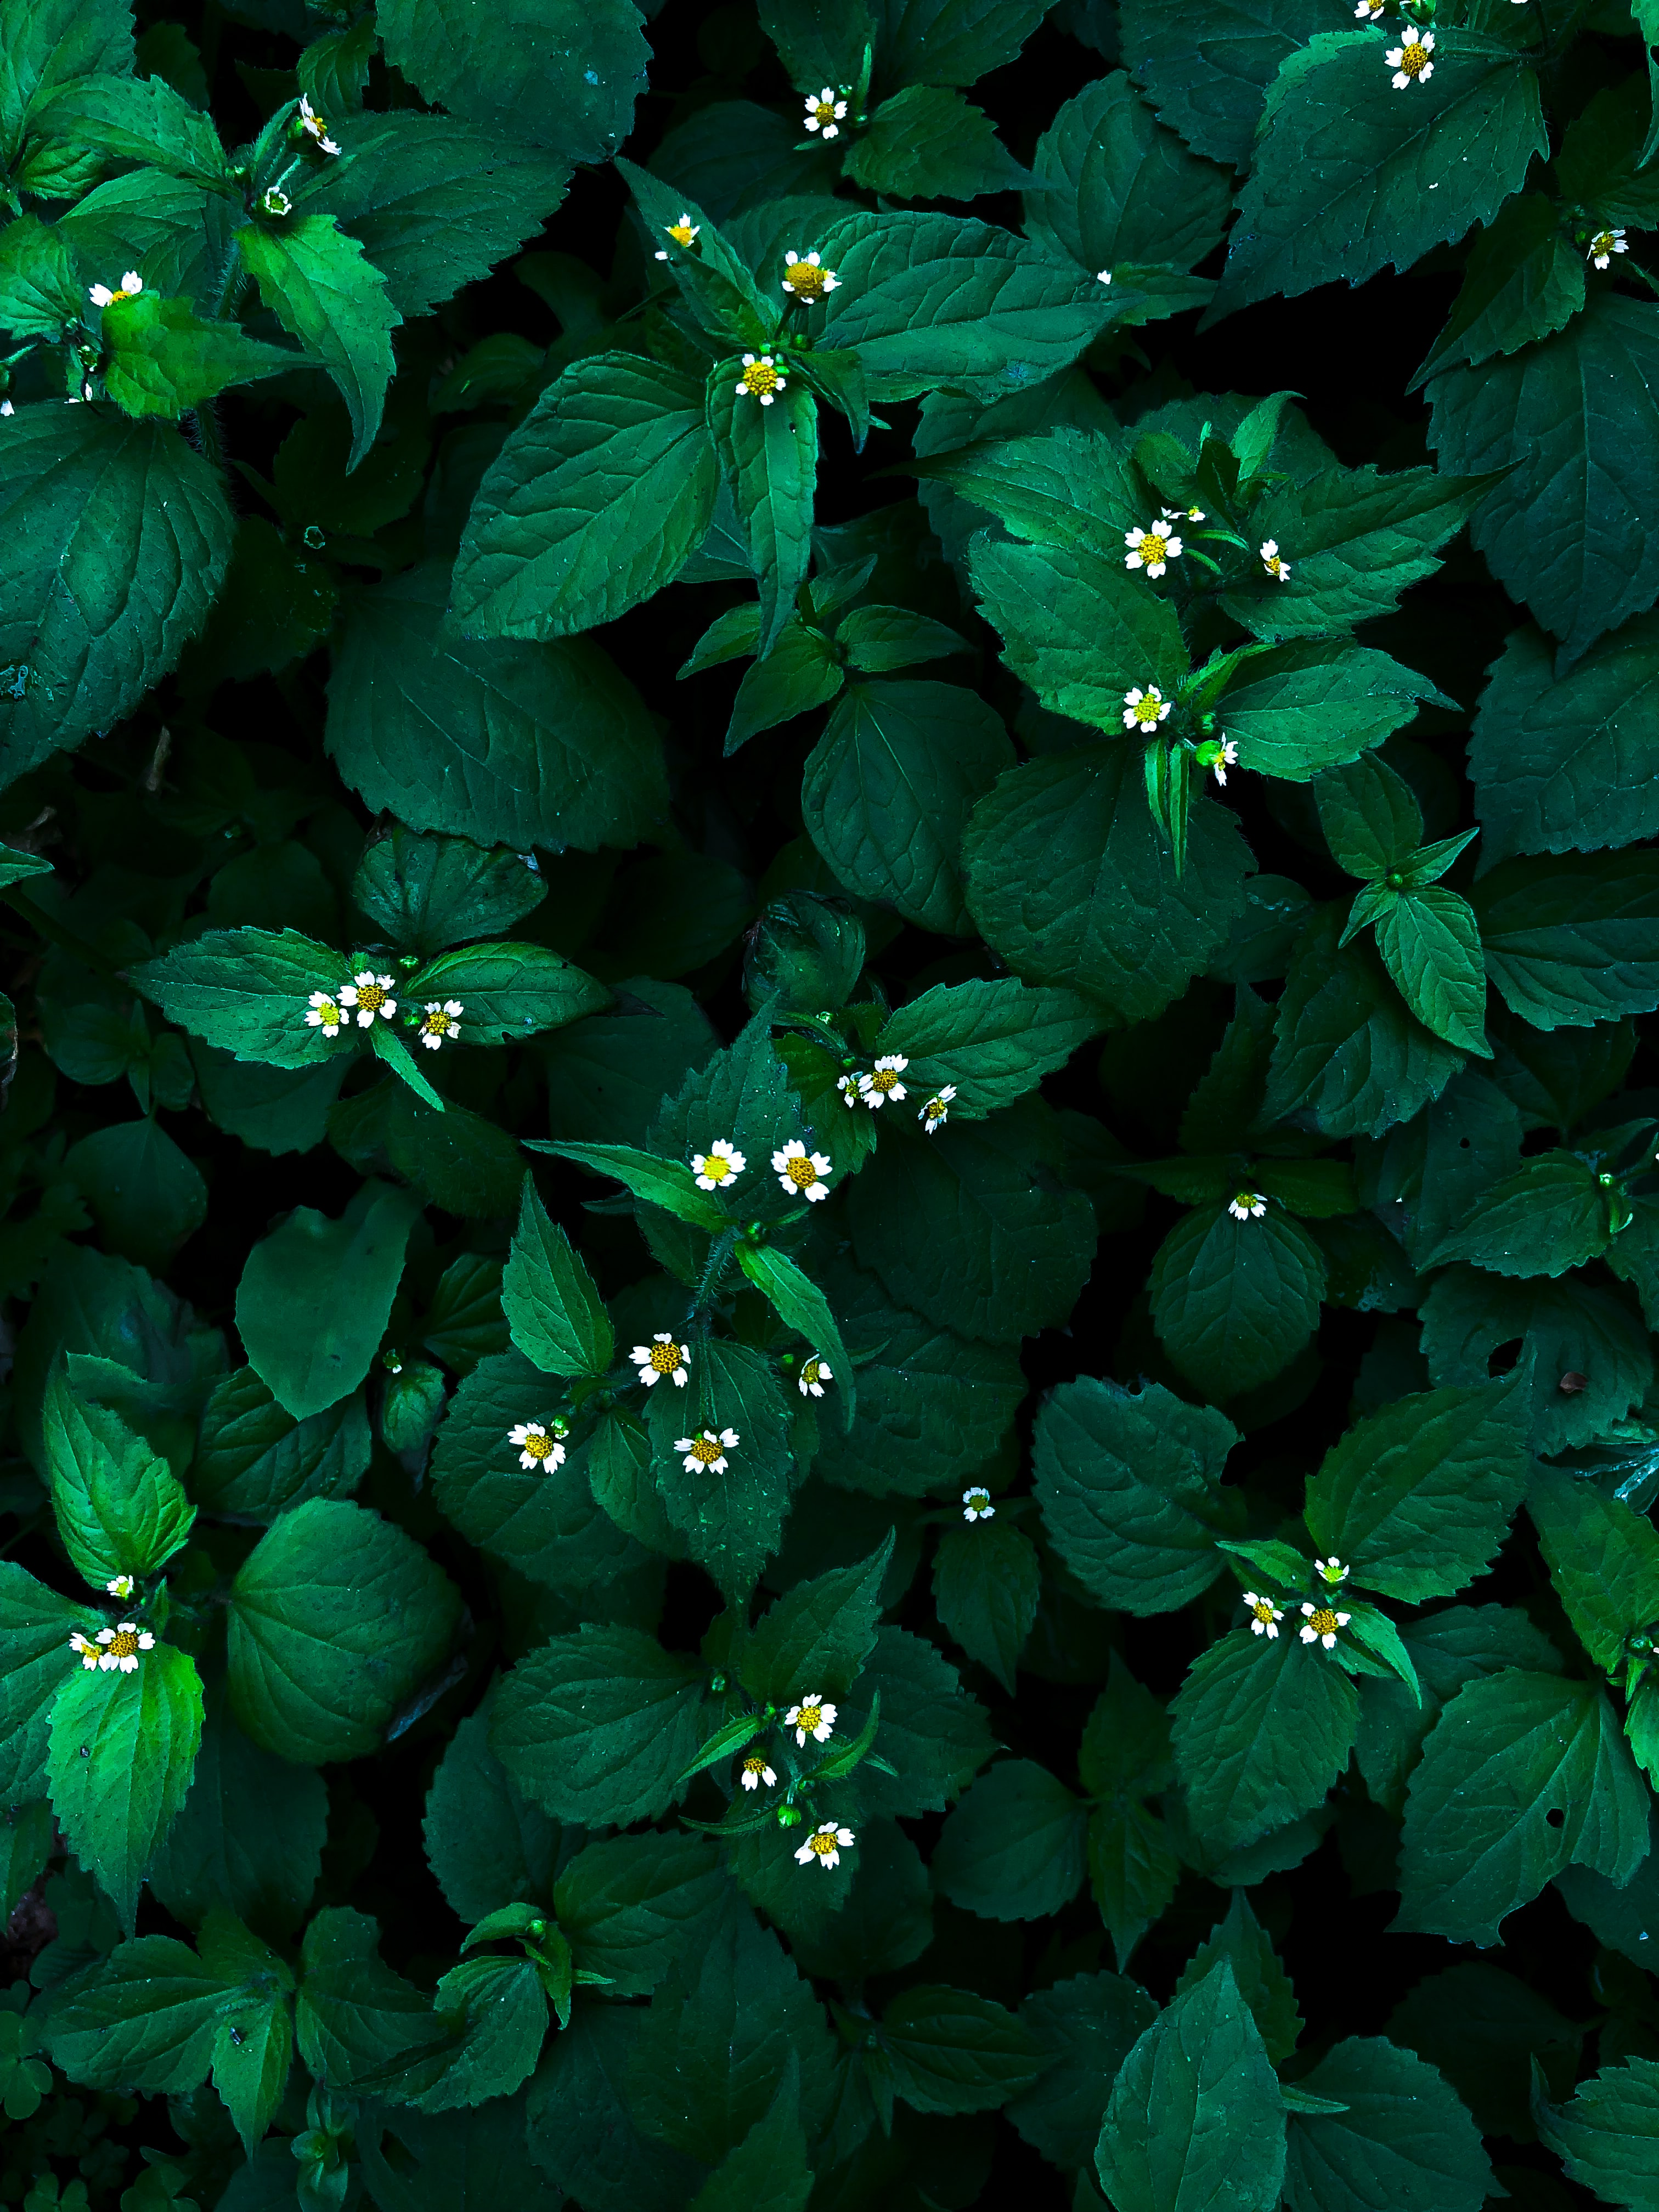 green leafed-plants